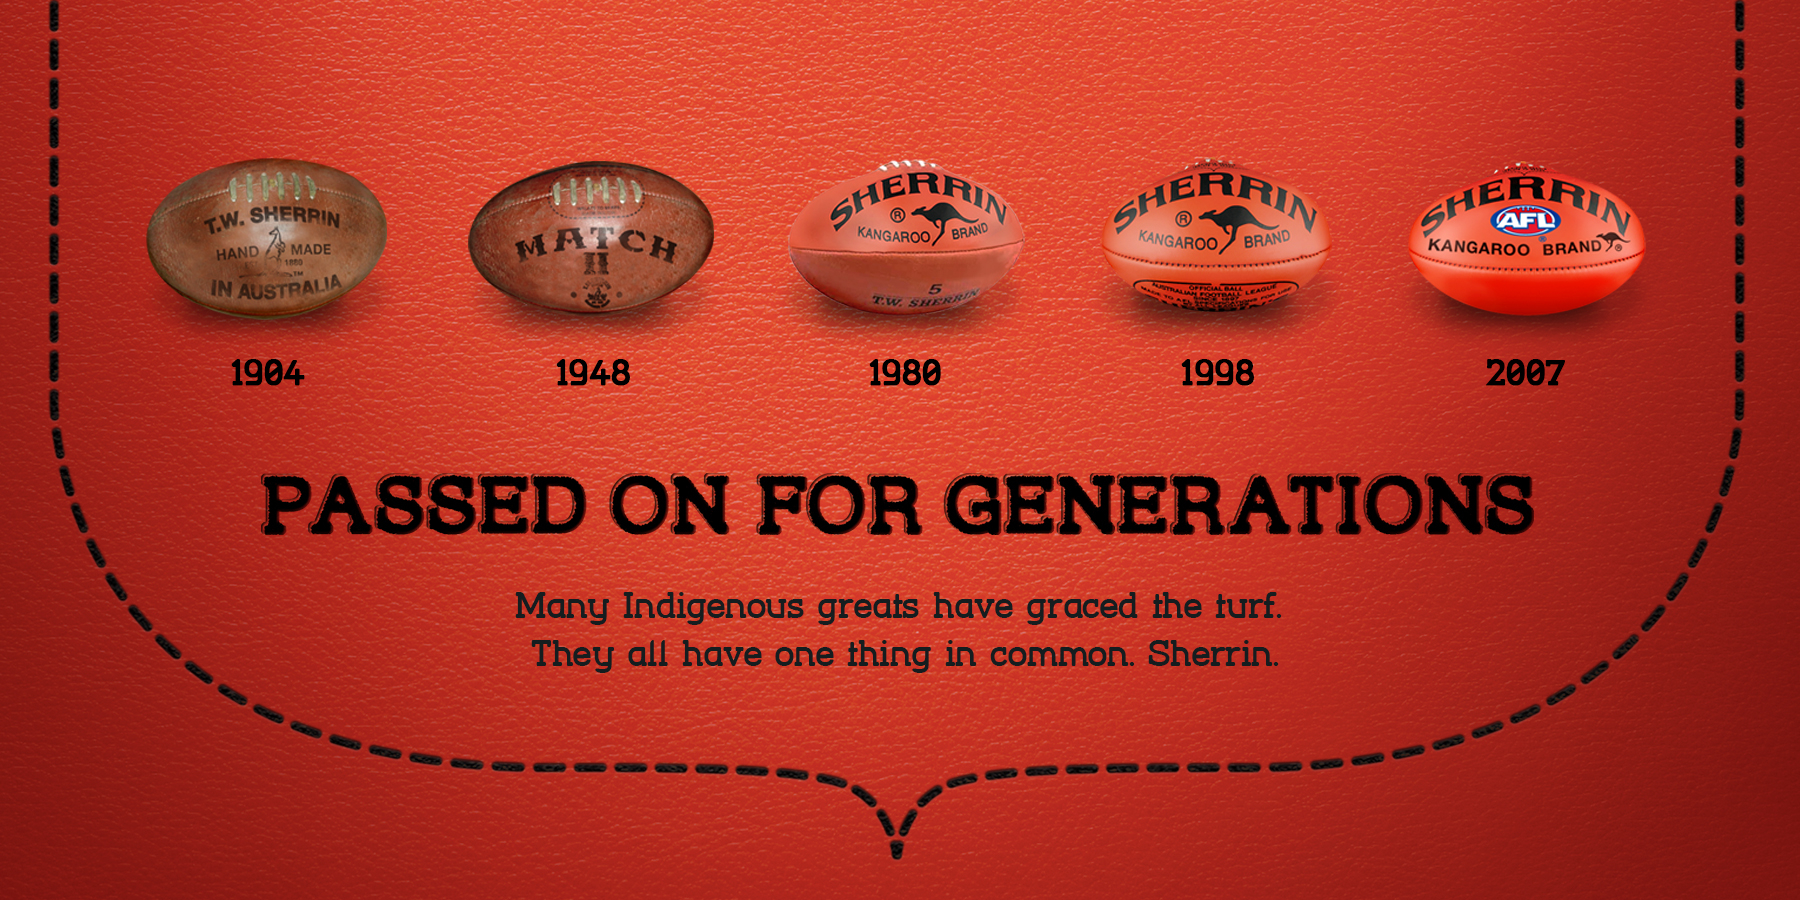 SHERRIN Advertising Campaign - 5 Red Footballs on red background